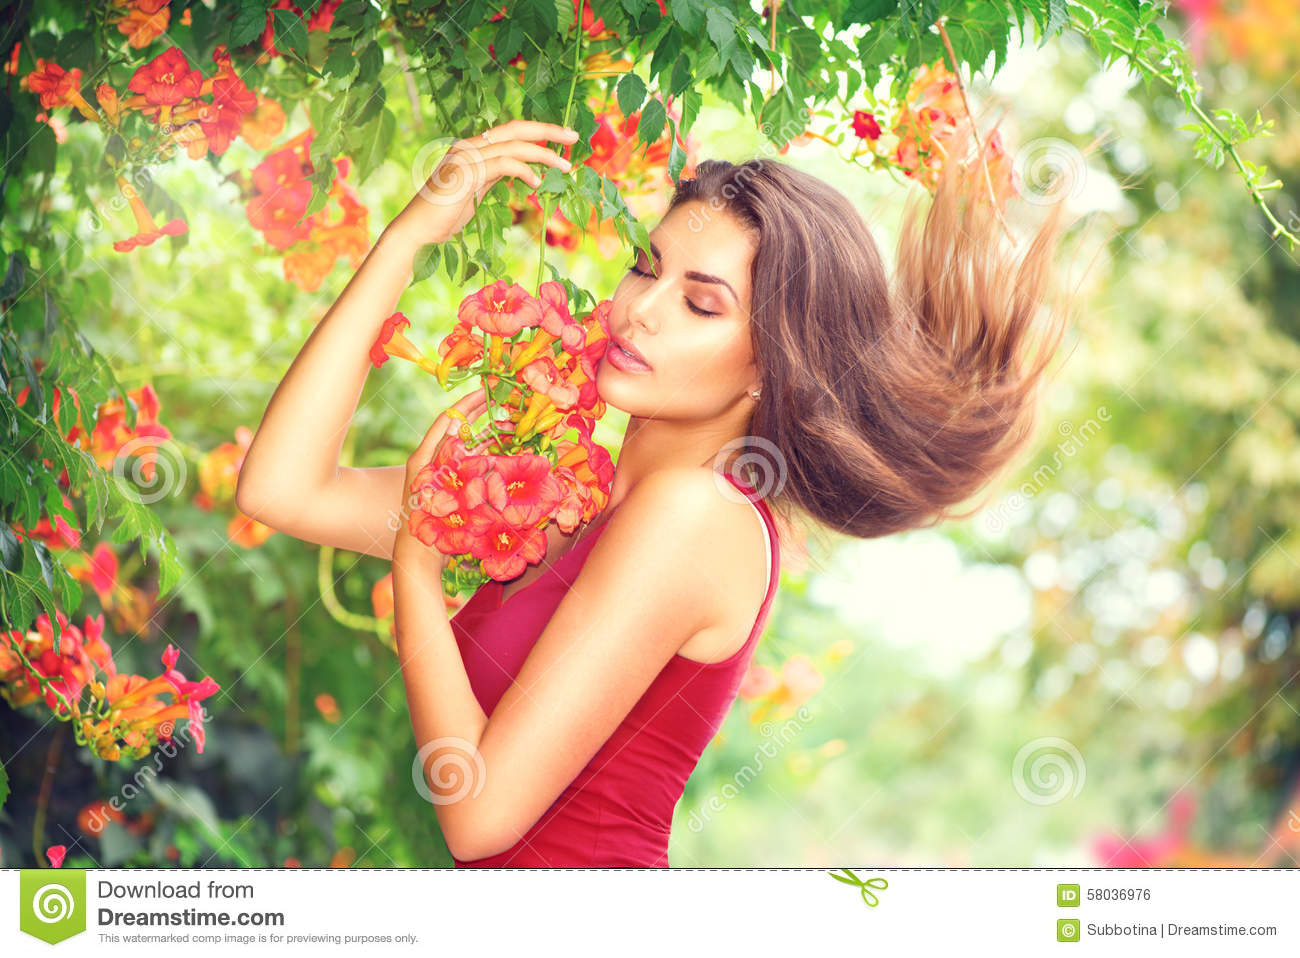 Beauty model girl enjoying nature